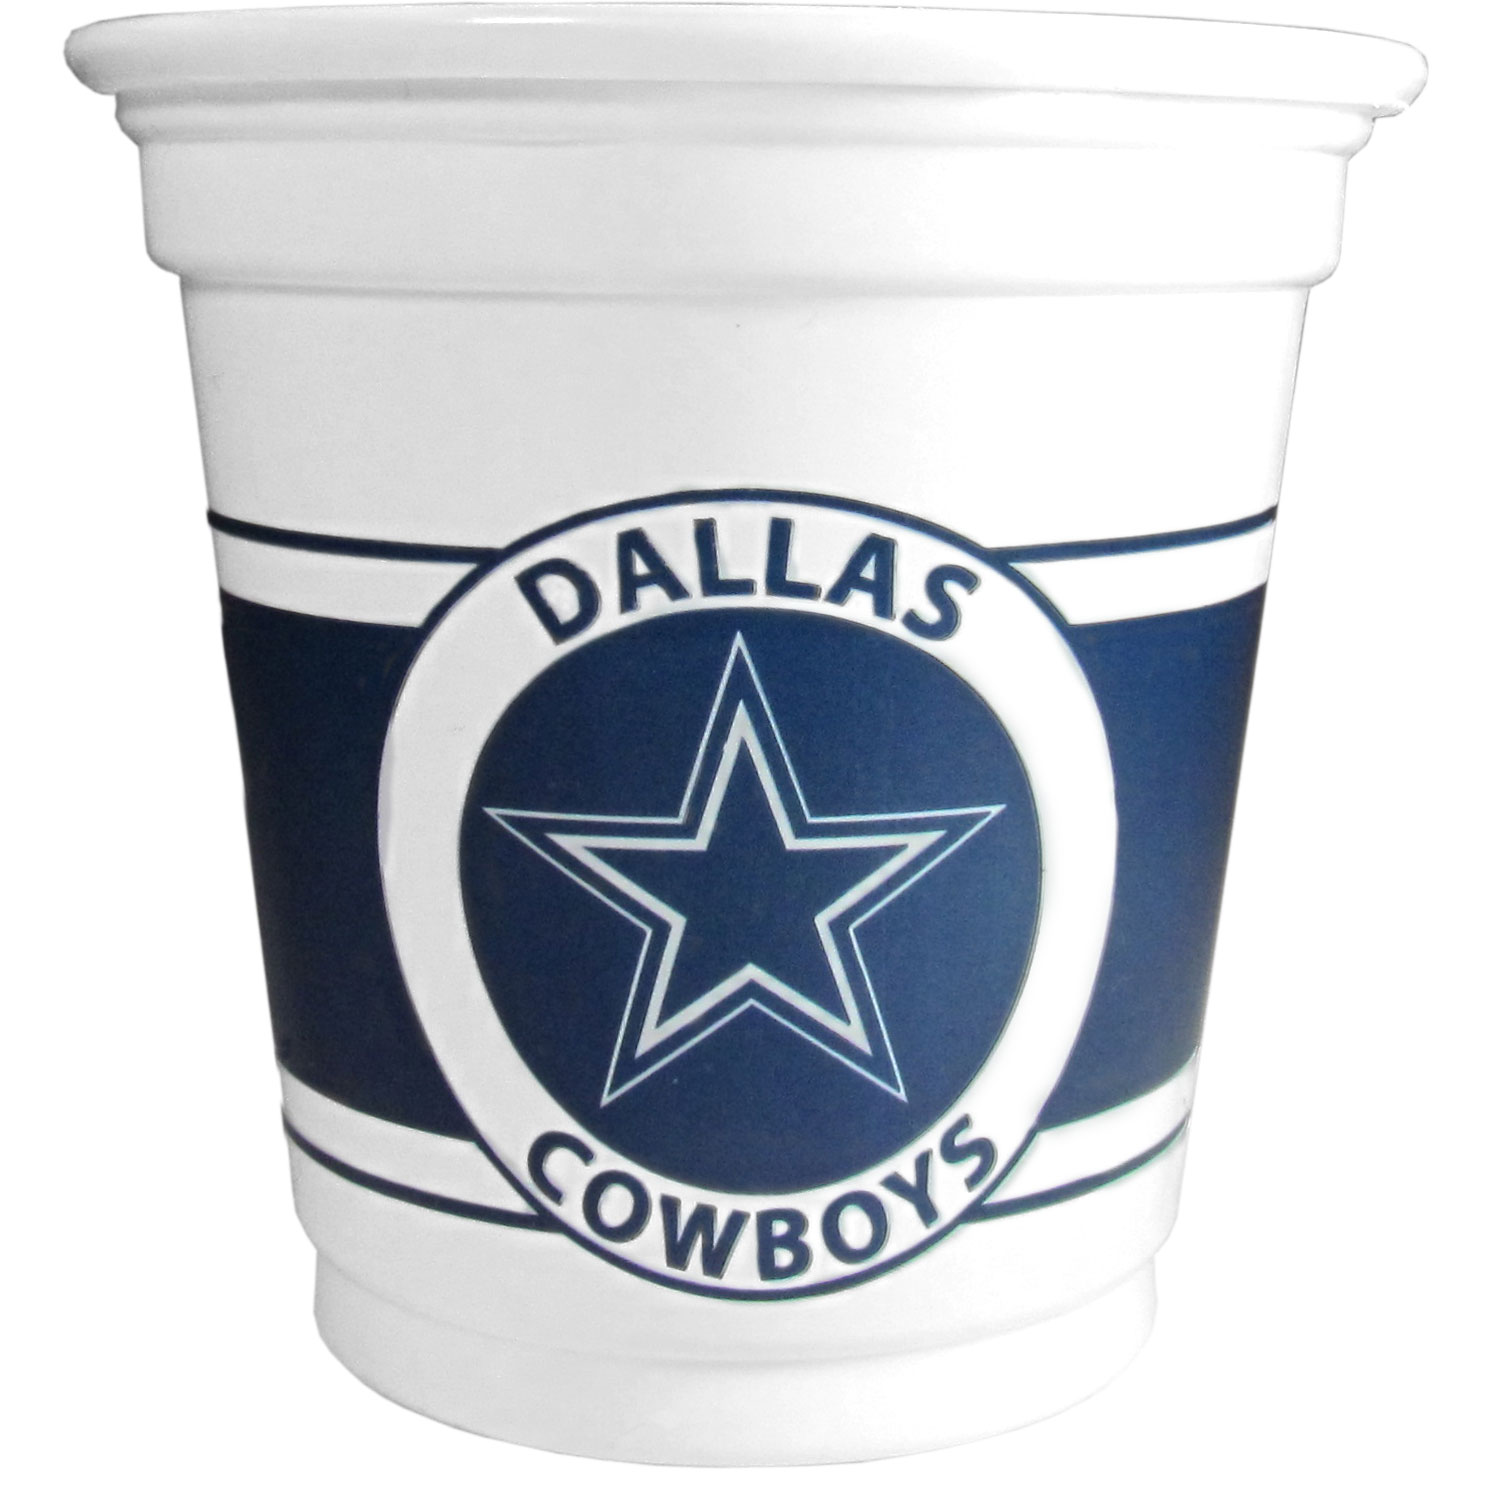 Dallas Cowboys 18 Game Day Mini Cups - No better way to show your off your team pride on game day than these Dallas Cowboys game day mini cups. The 3 ounce disposable glasses are the perfect addition to your game day party or tailgating BBQ. The cups come in a sleeve of 18 to make sure everyone is sporting true team spirit!